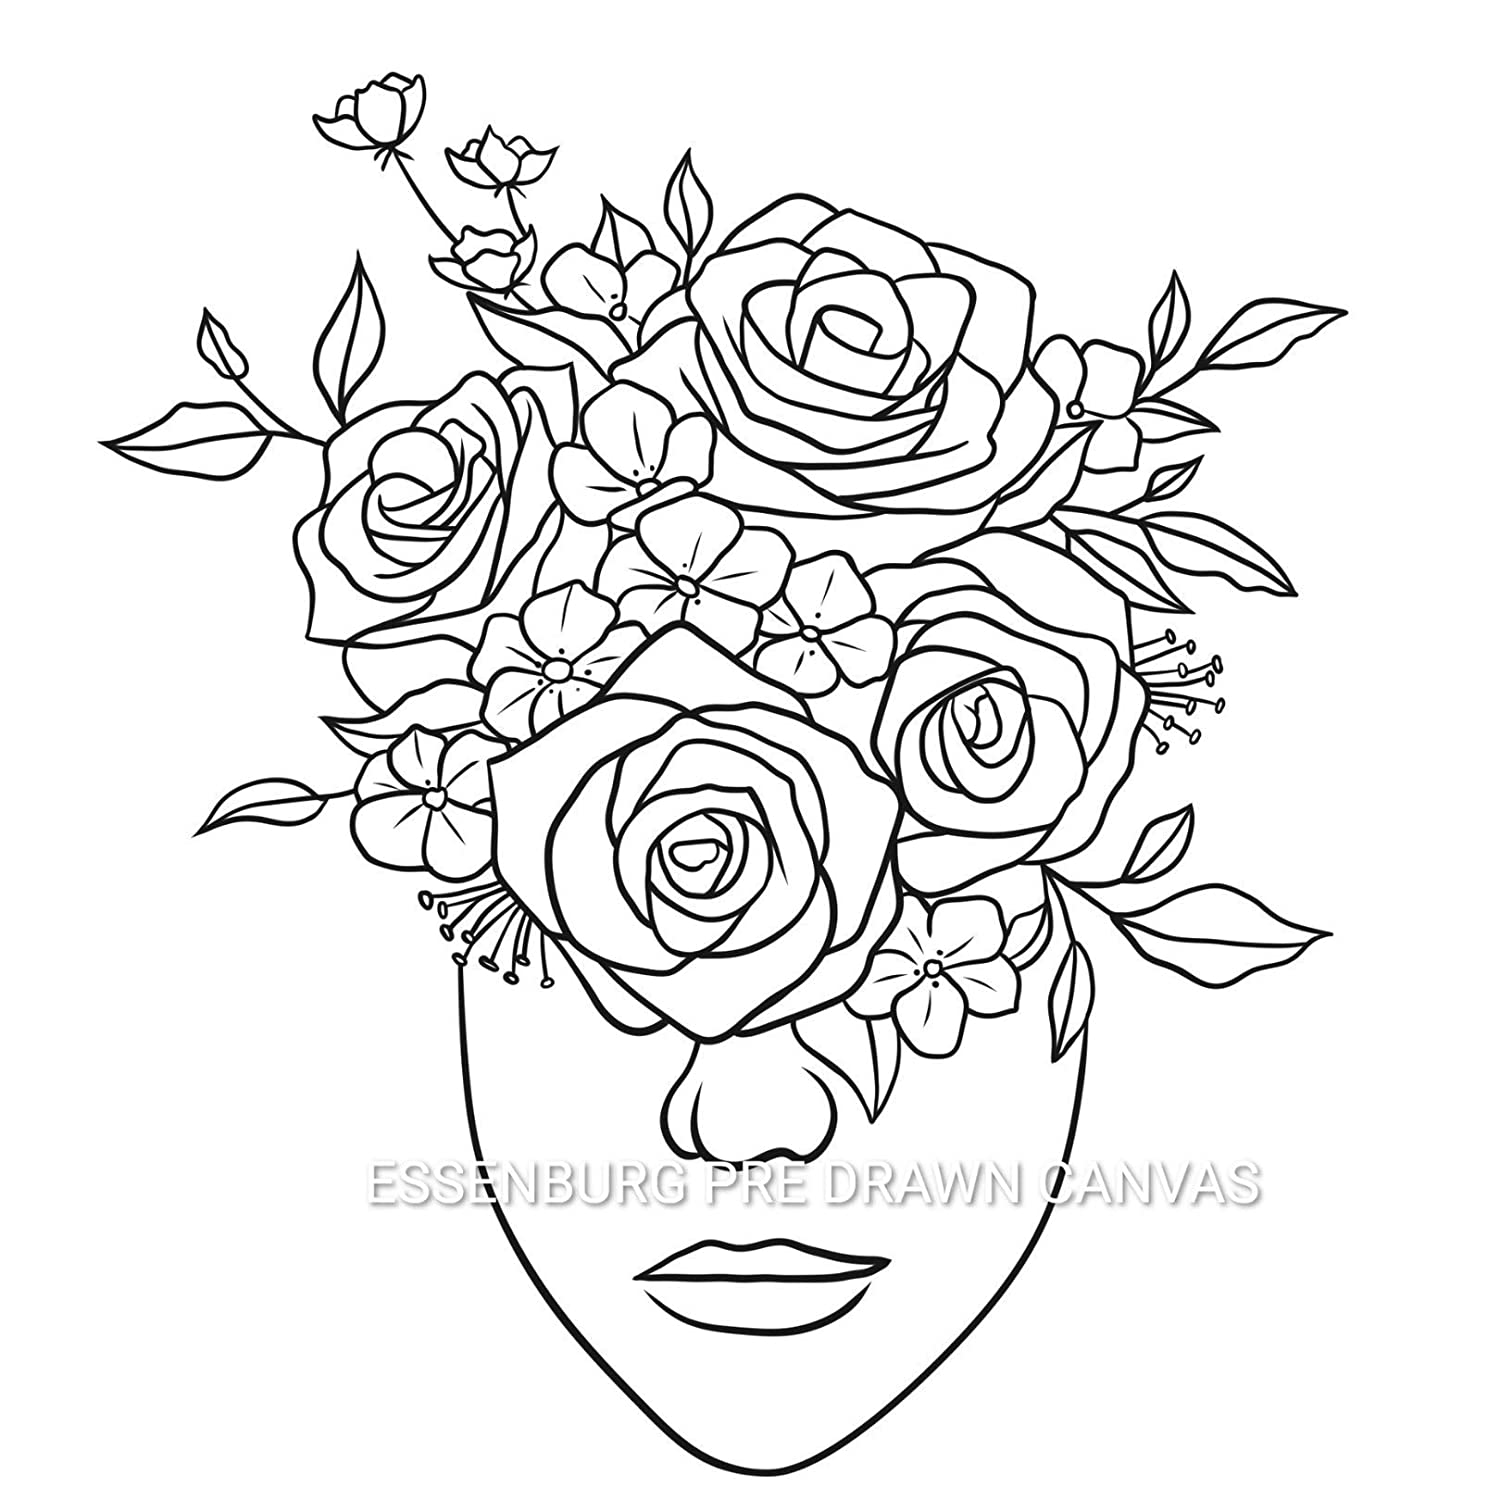 Pre Drawn Canvas Flower Lady Paint Kit | Adult & Teen Sip and Paint Party Favor | DIY Date Night Couple Activity